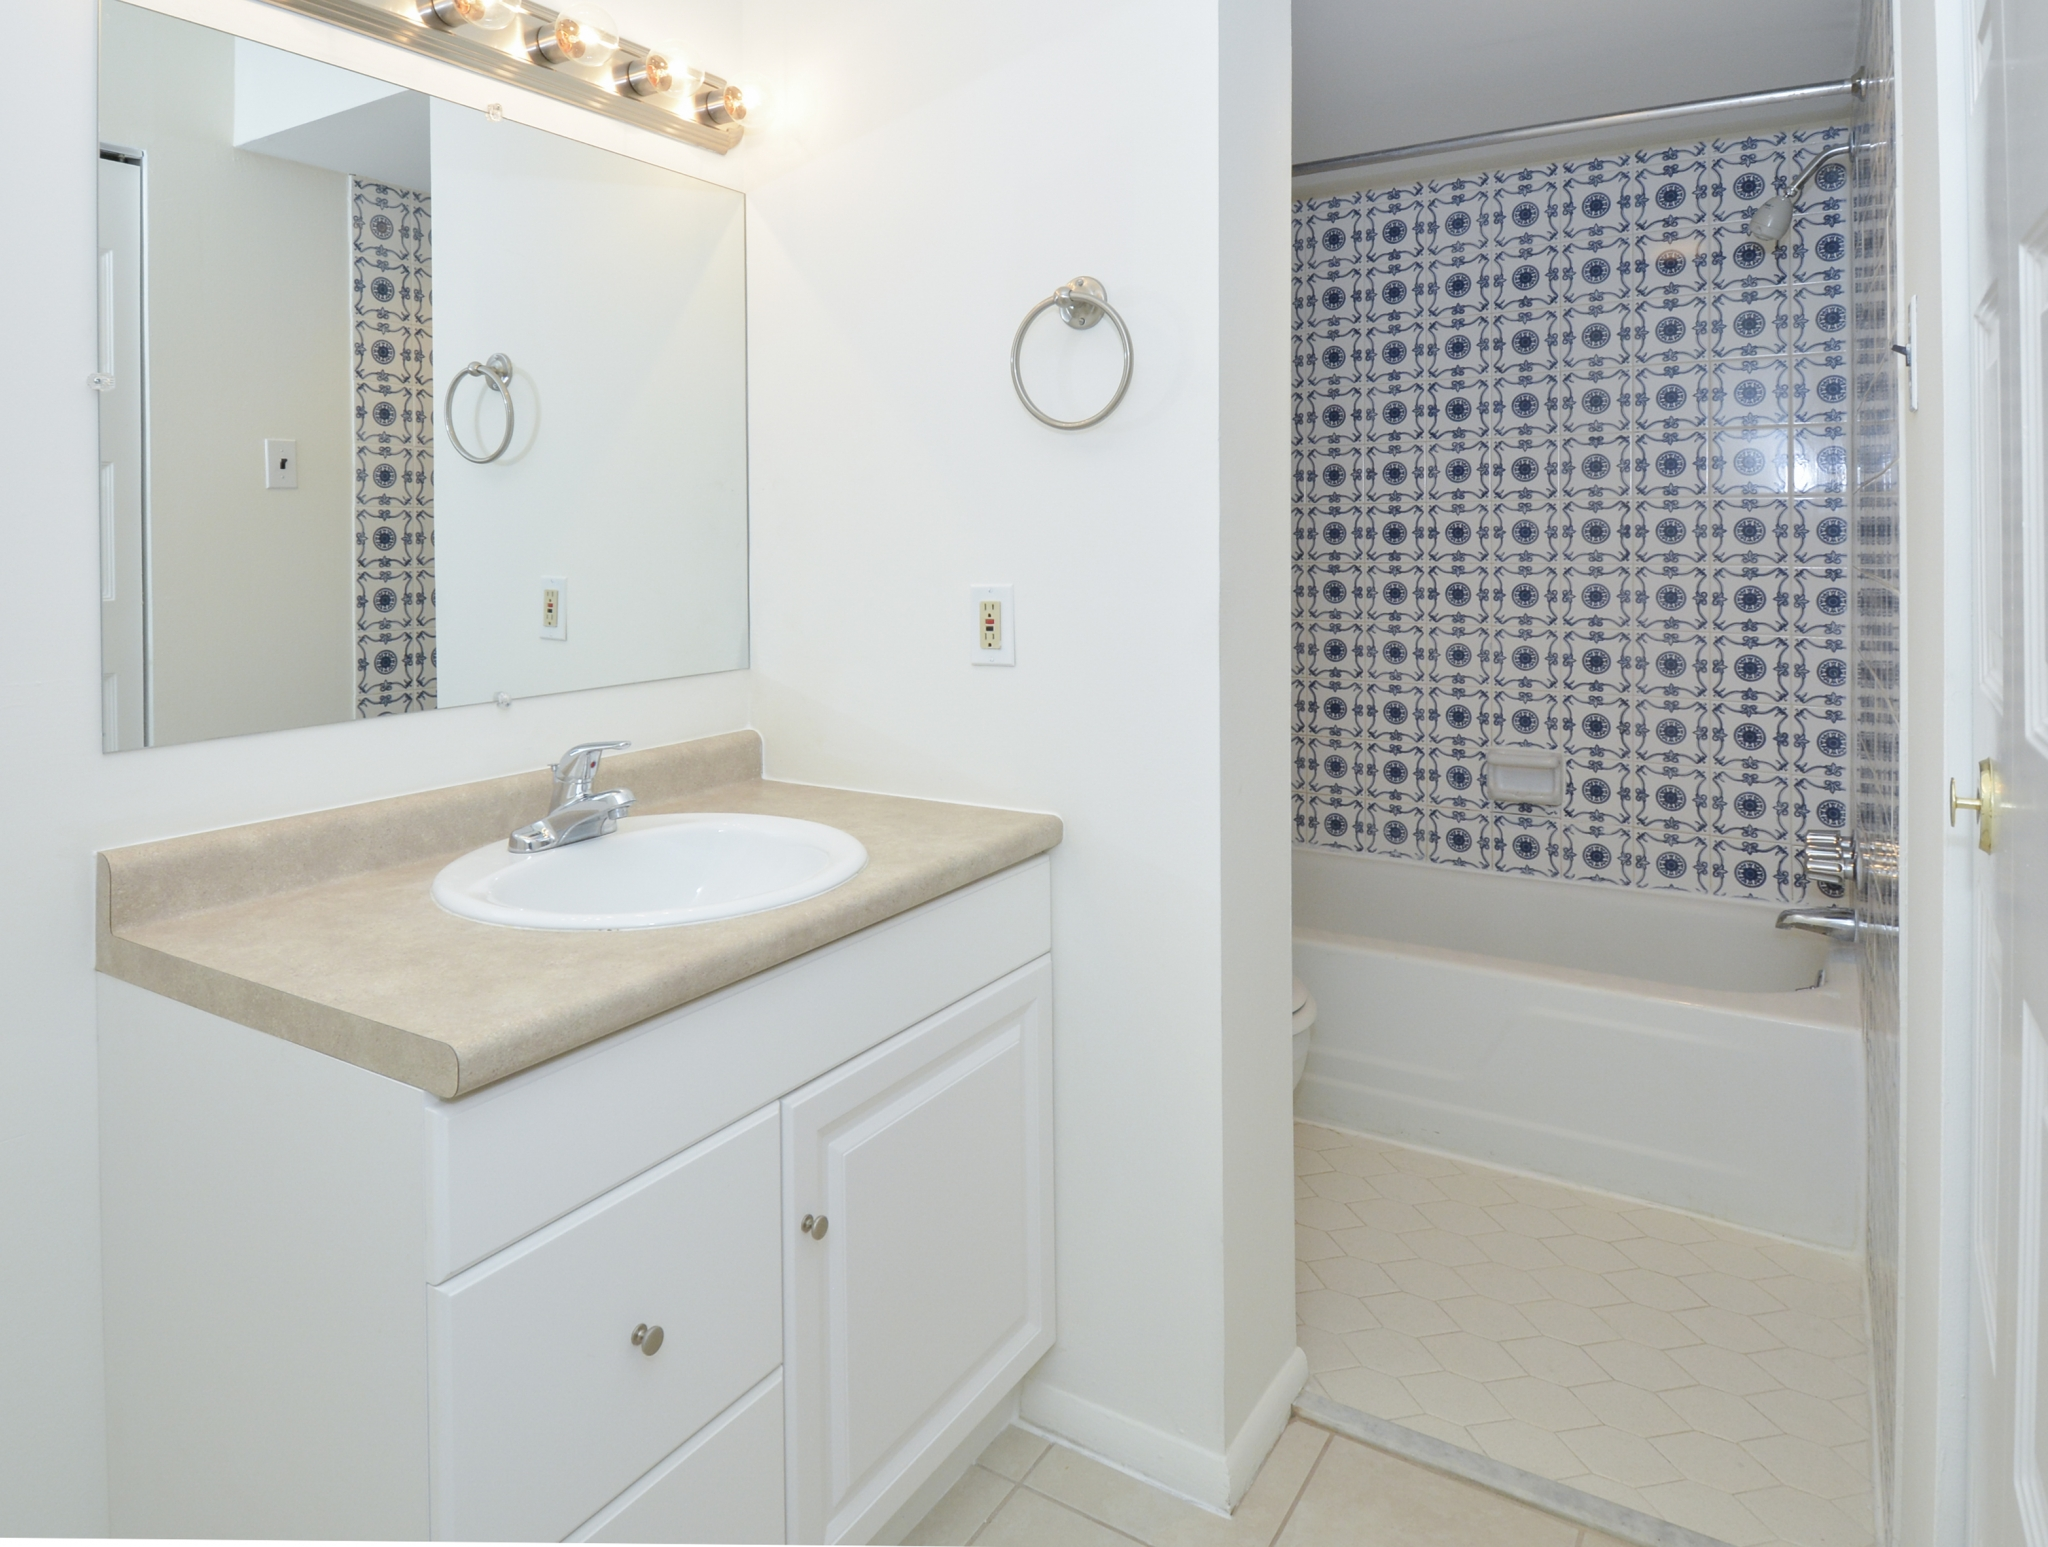 Gladstone Towers Sample Bathroom with White and Beige Vanity | Apartments in Lansdowne PA